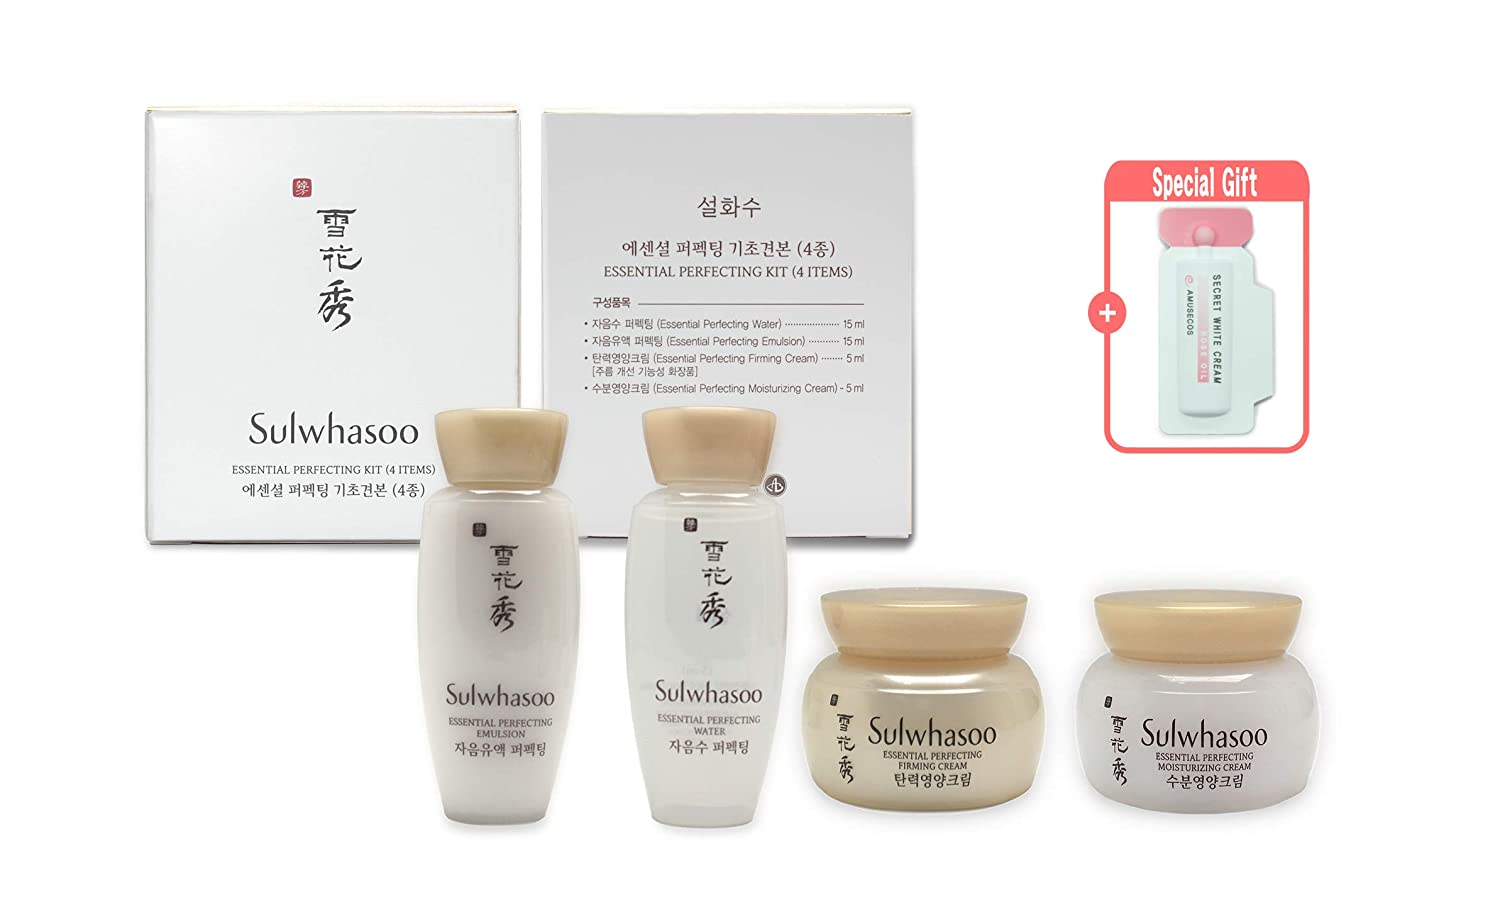 Sulwhasoo New Max 74% OFF Basic Skin Care Items Perfecting Kit 4 Essential latest